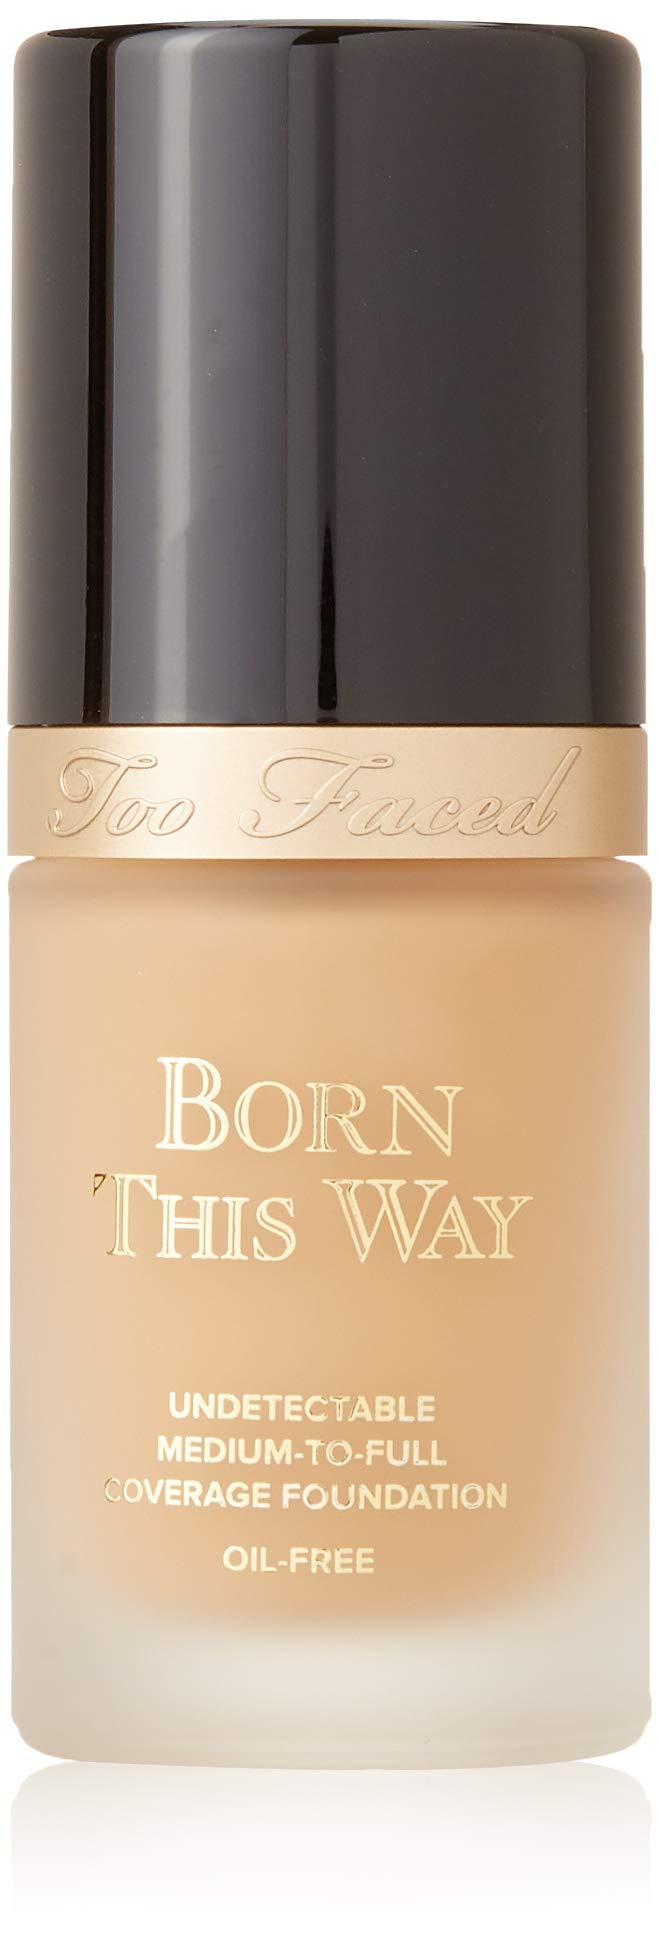 Too Faced Born This Way Foundation (Warm Nude)